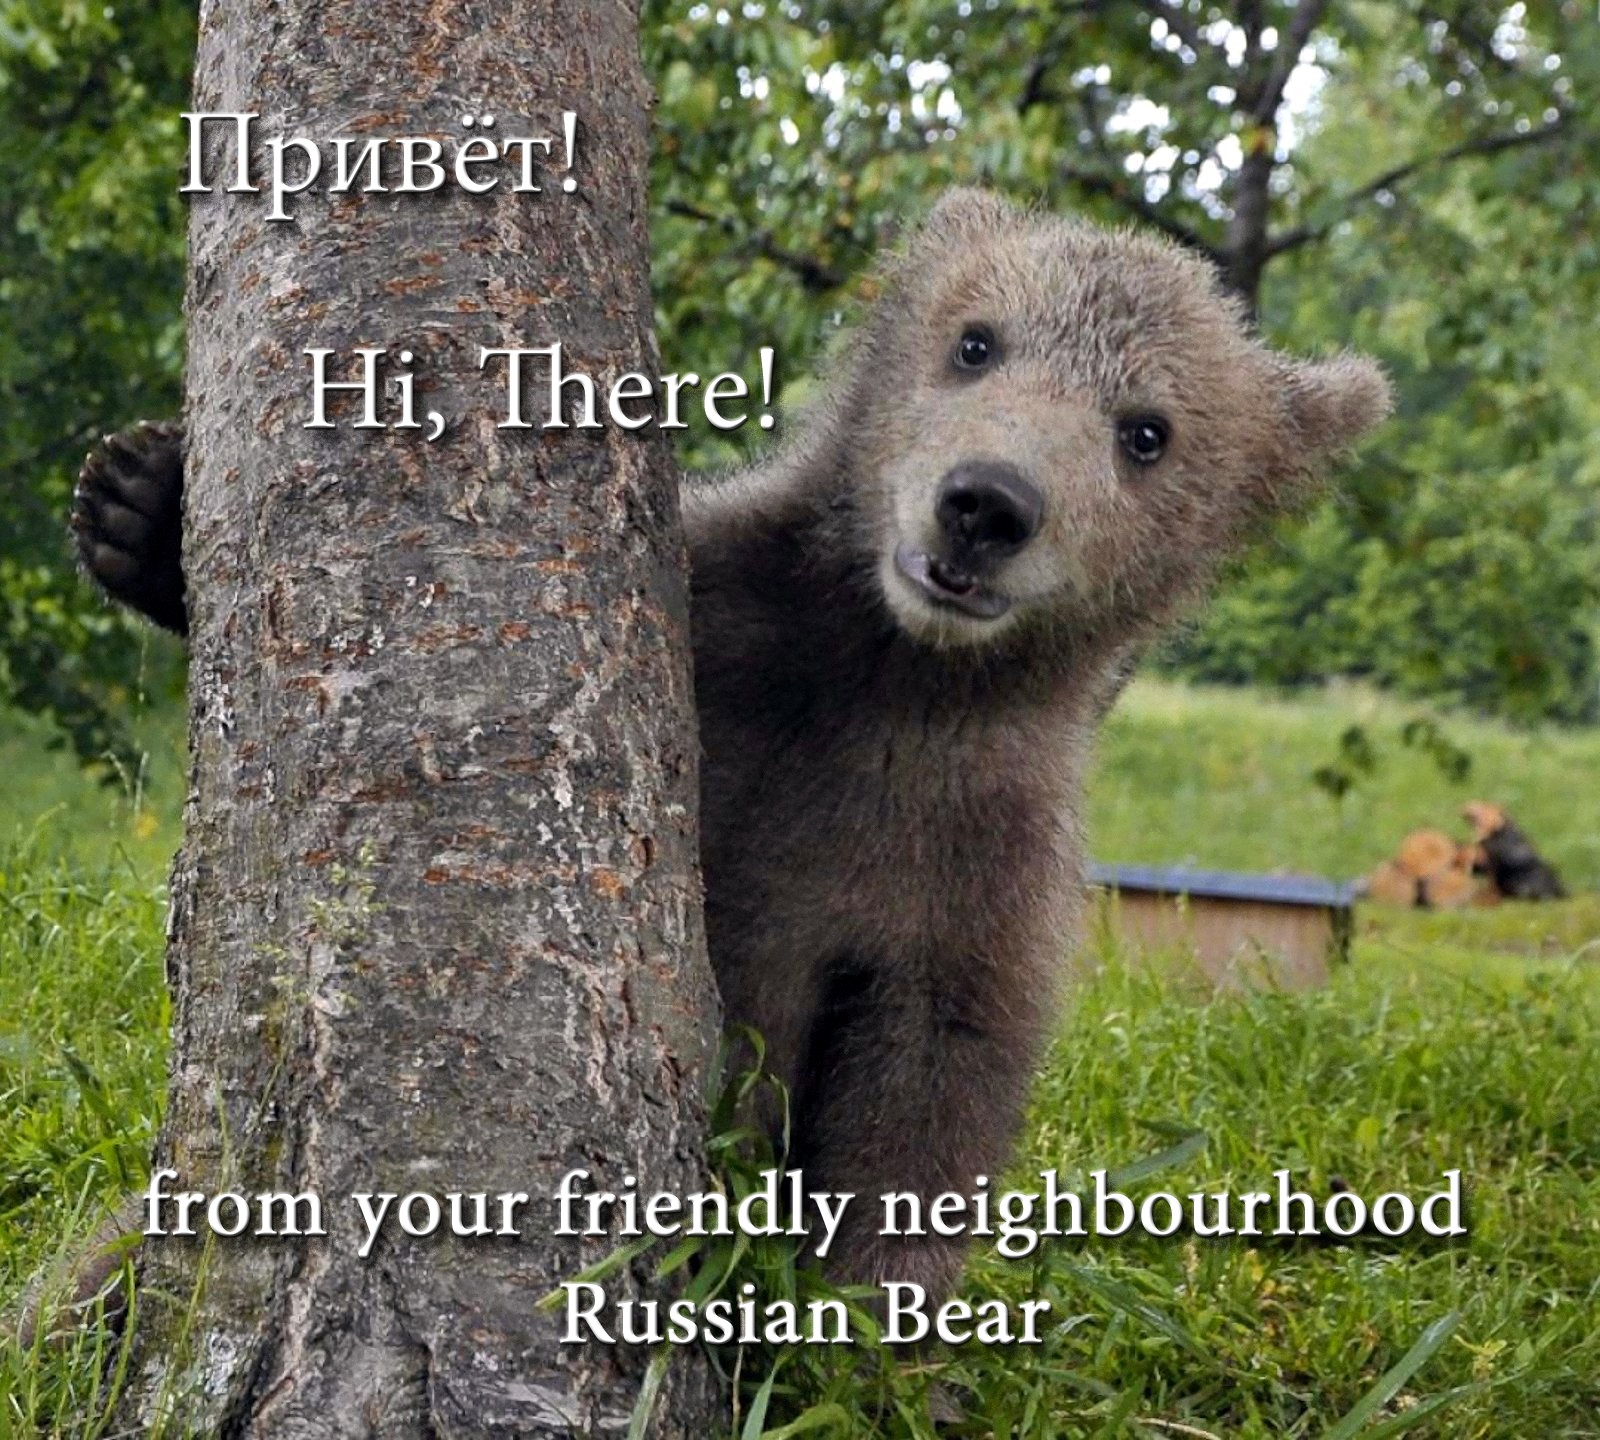 00 hi there from your russian bear! 051215